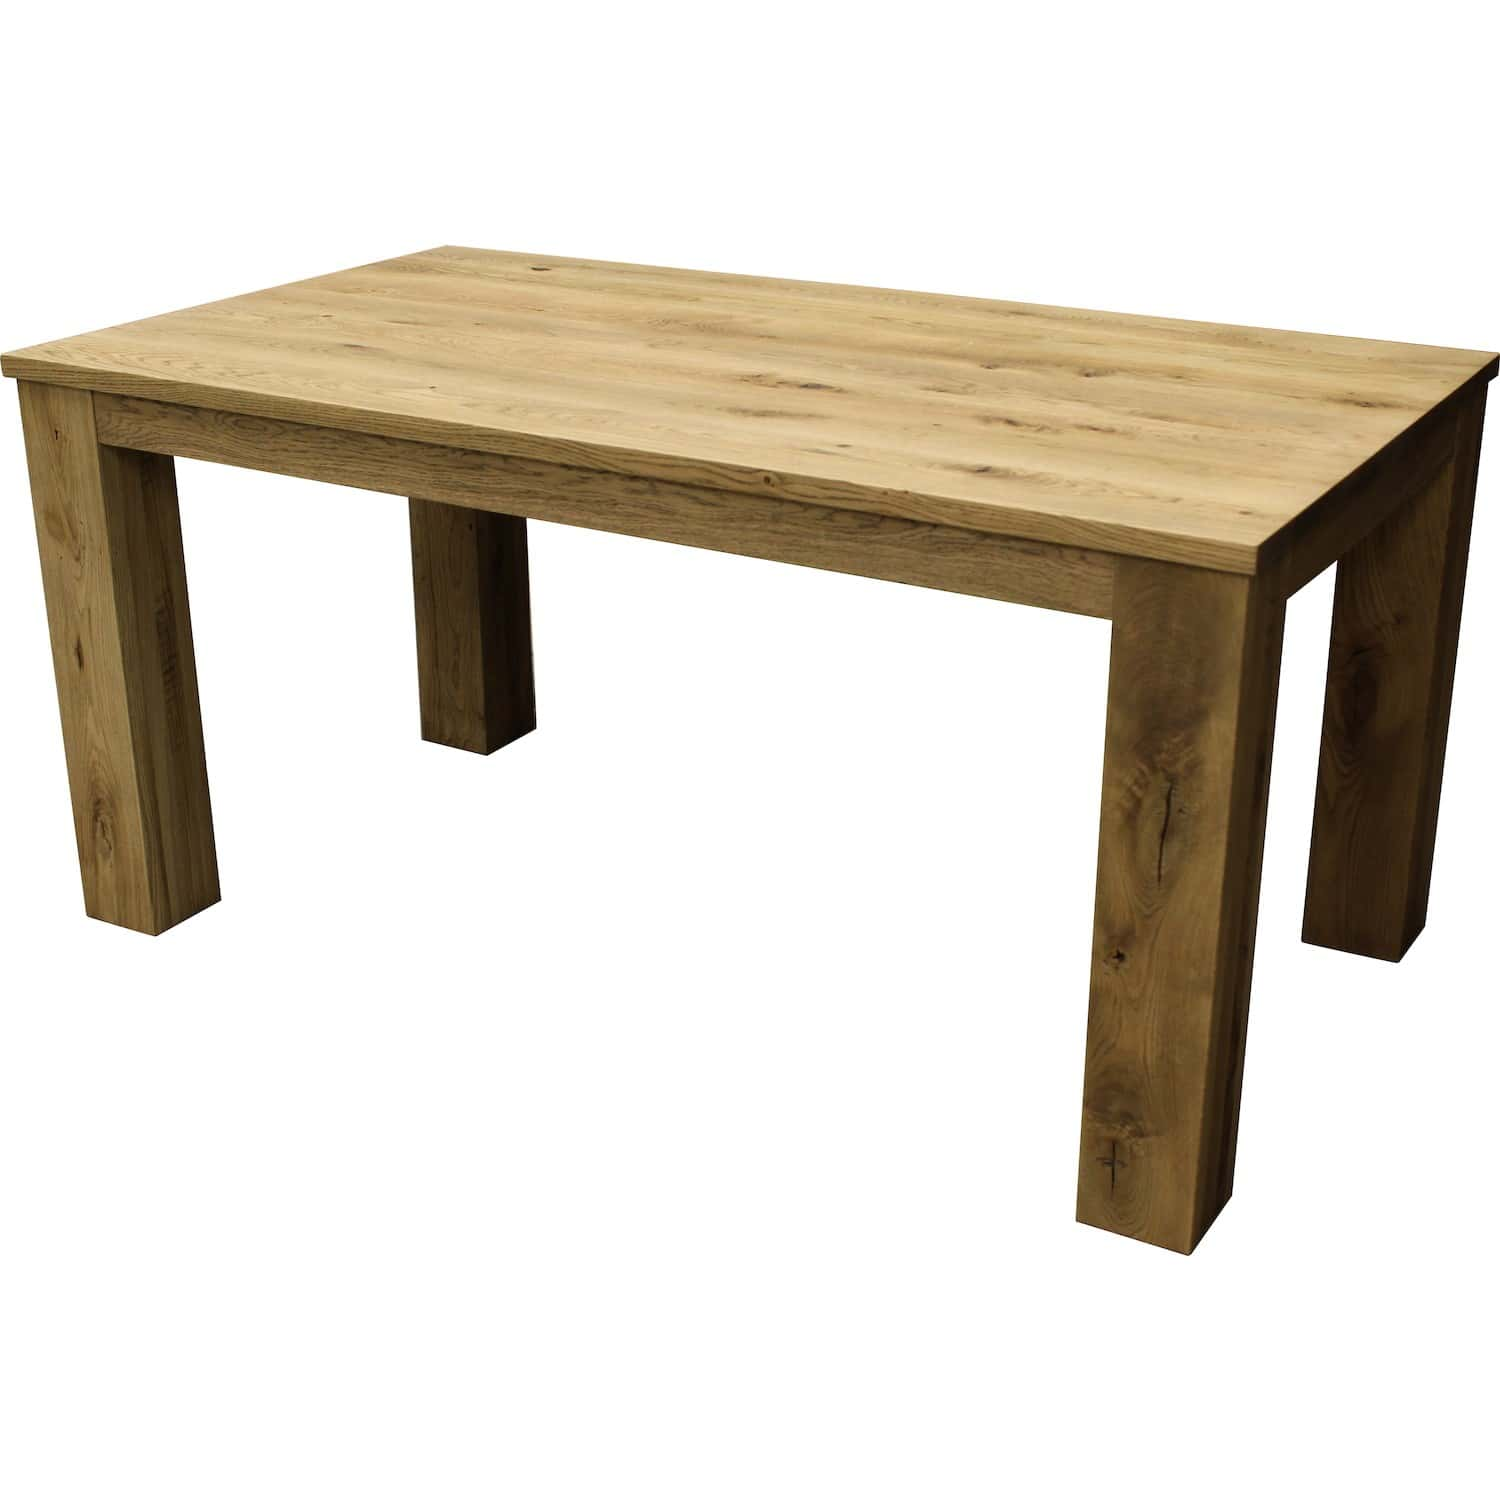 Table rectangulaire en ch ne massif avec allonge int gr e jbf - Table avec rallonge integree ...